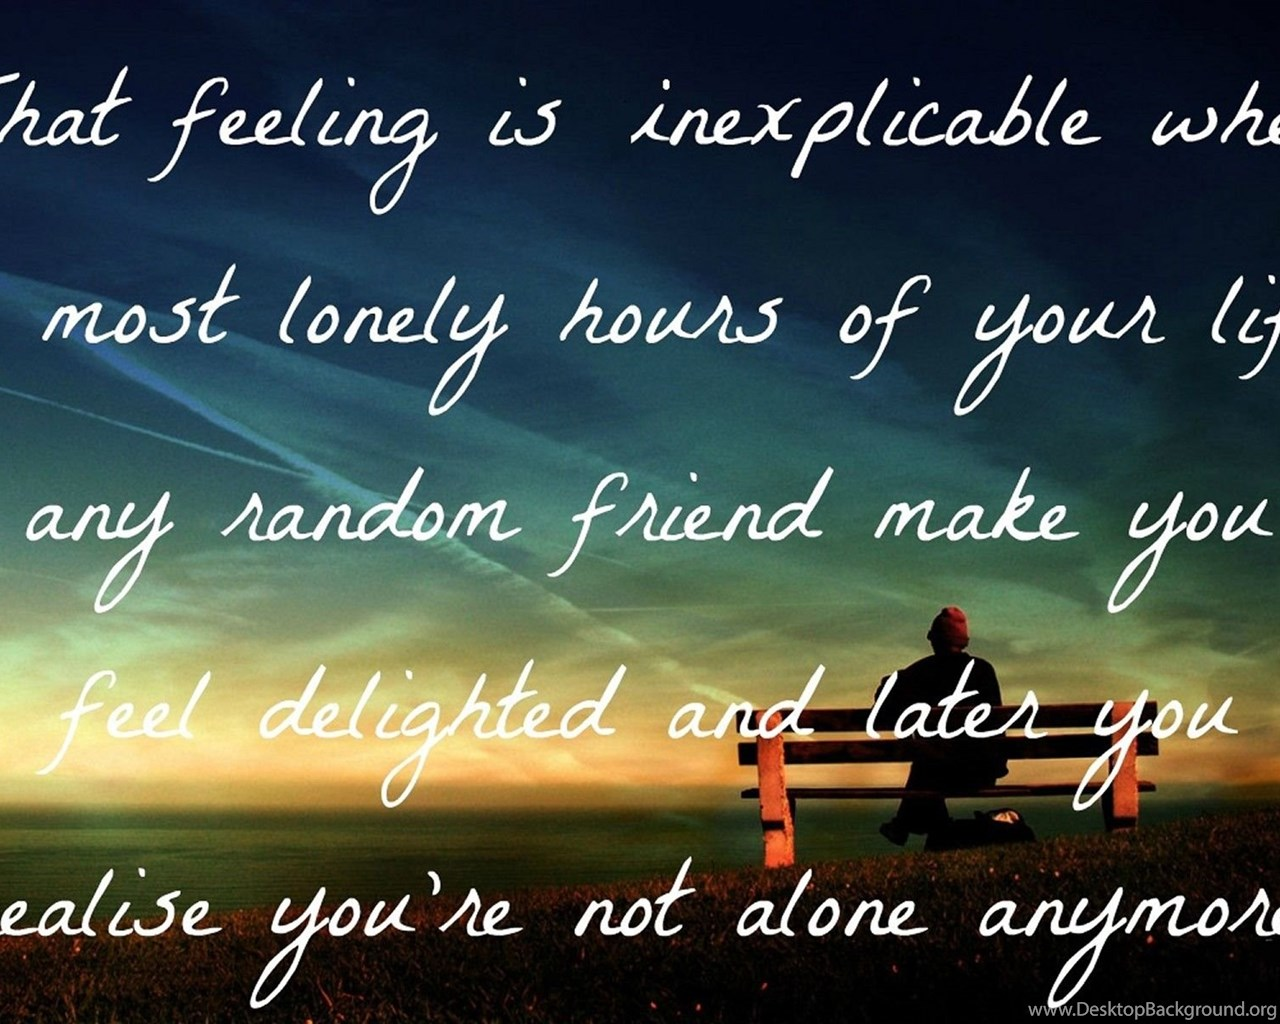 Loneliness Quotes HD Wallpaper Images AtozWallpapers Desktop Background